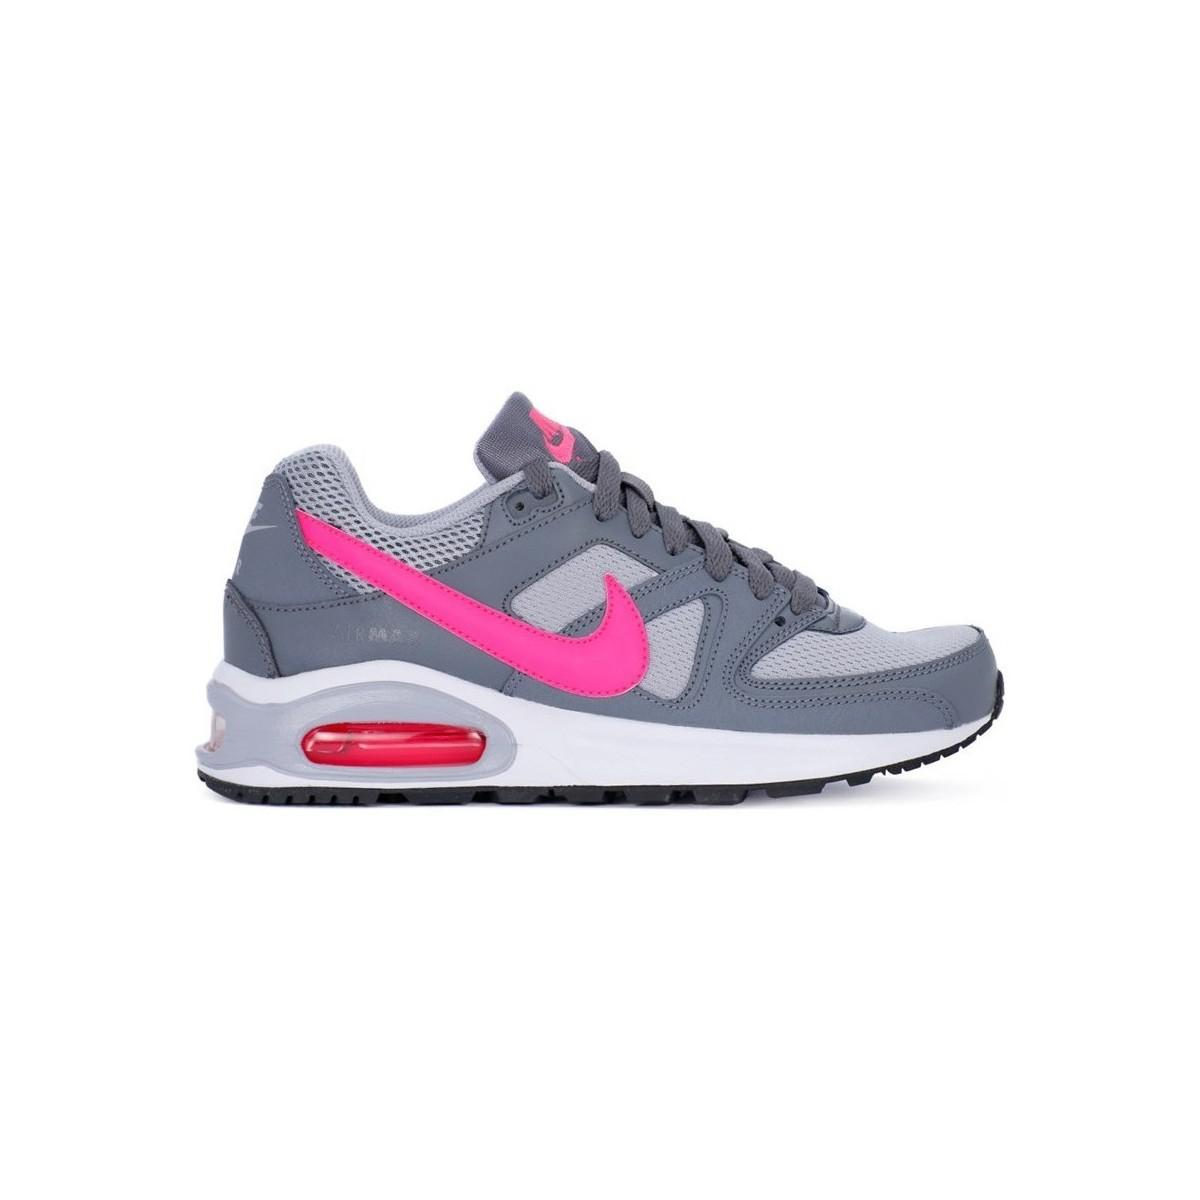 54189fb082 Nike Air Max Command Flex Gs Women's Shoes (trainers) In Grey in ...